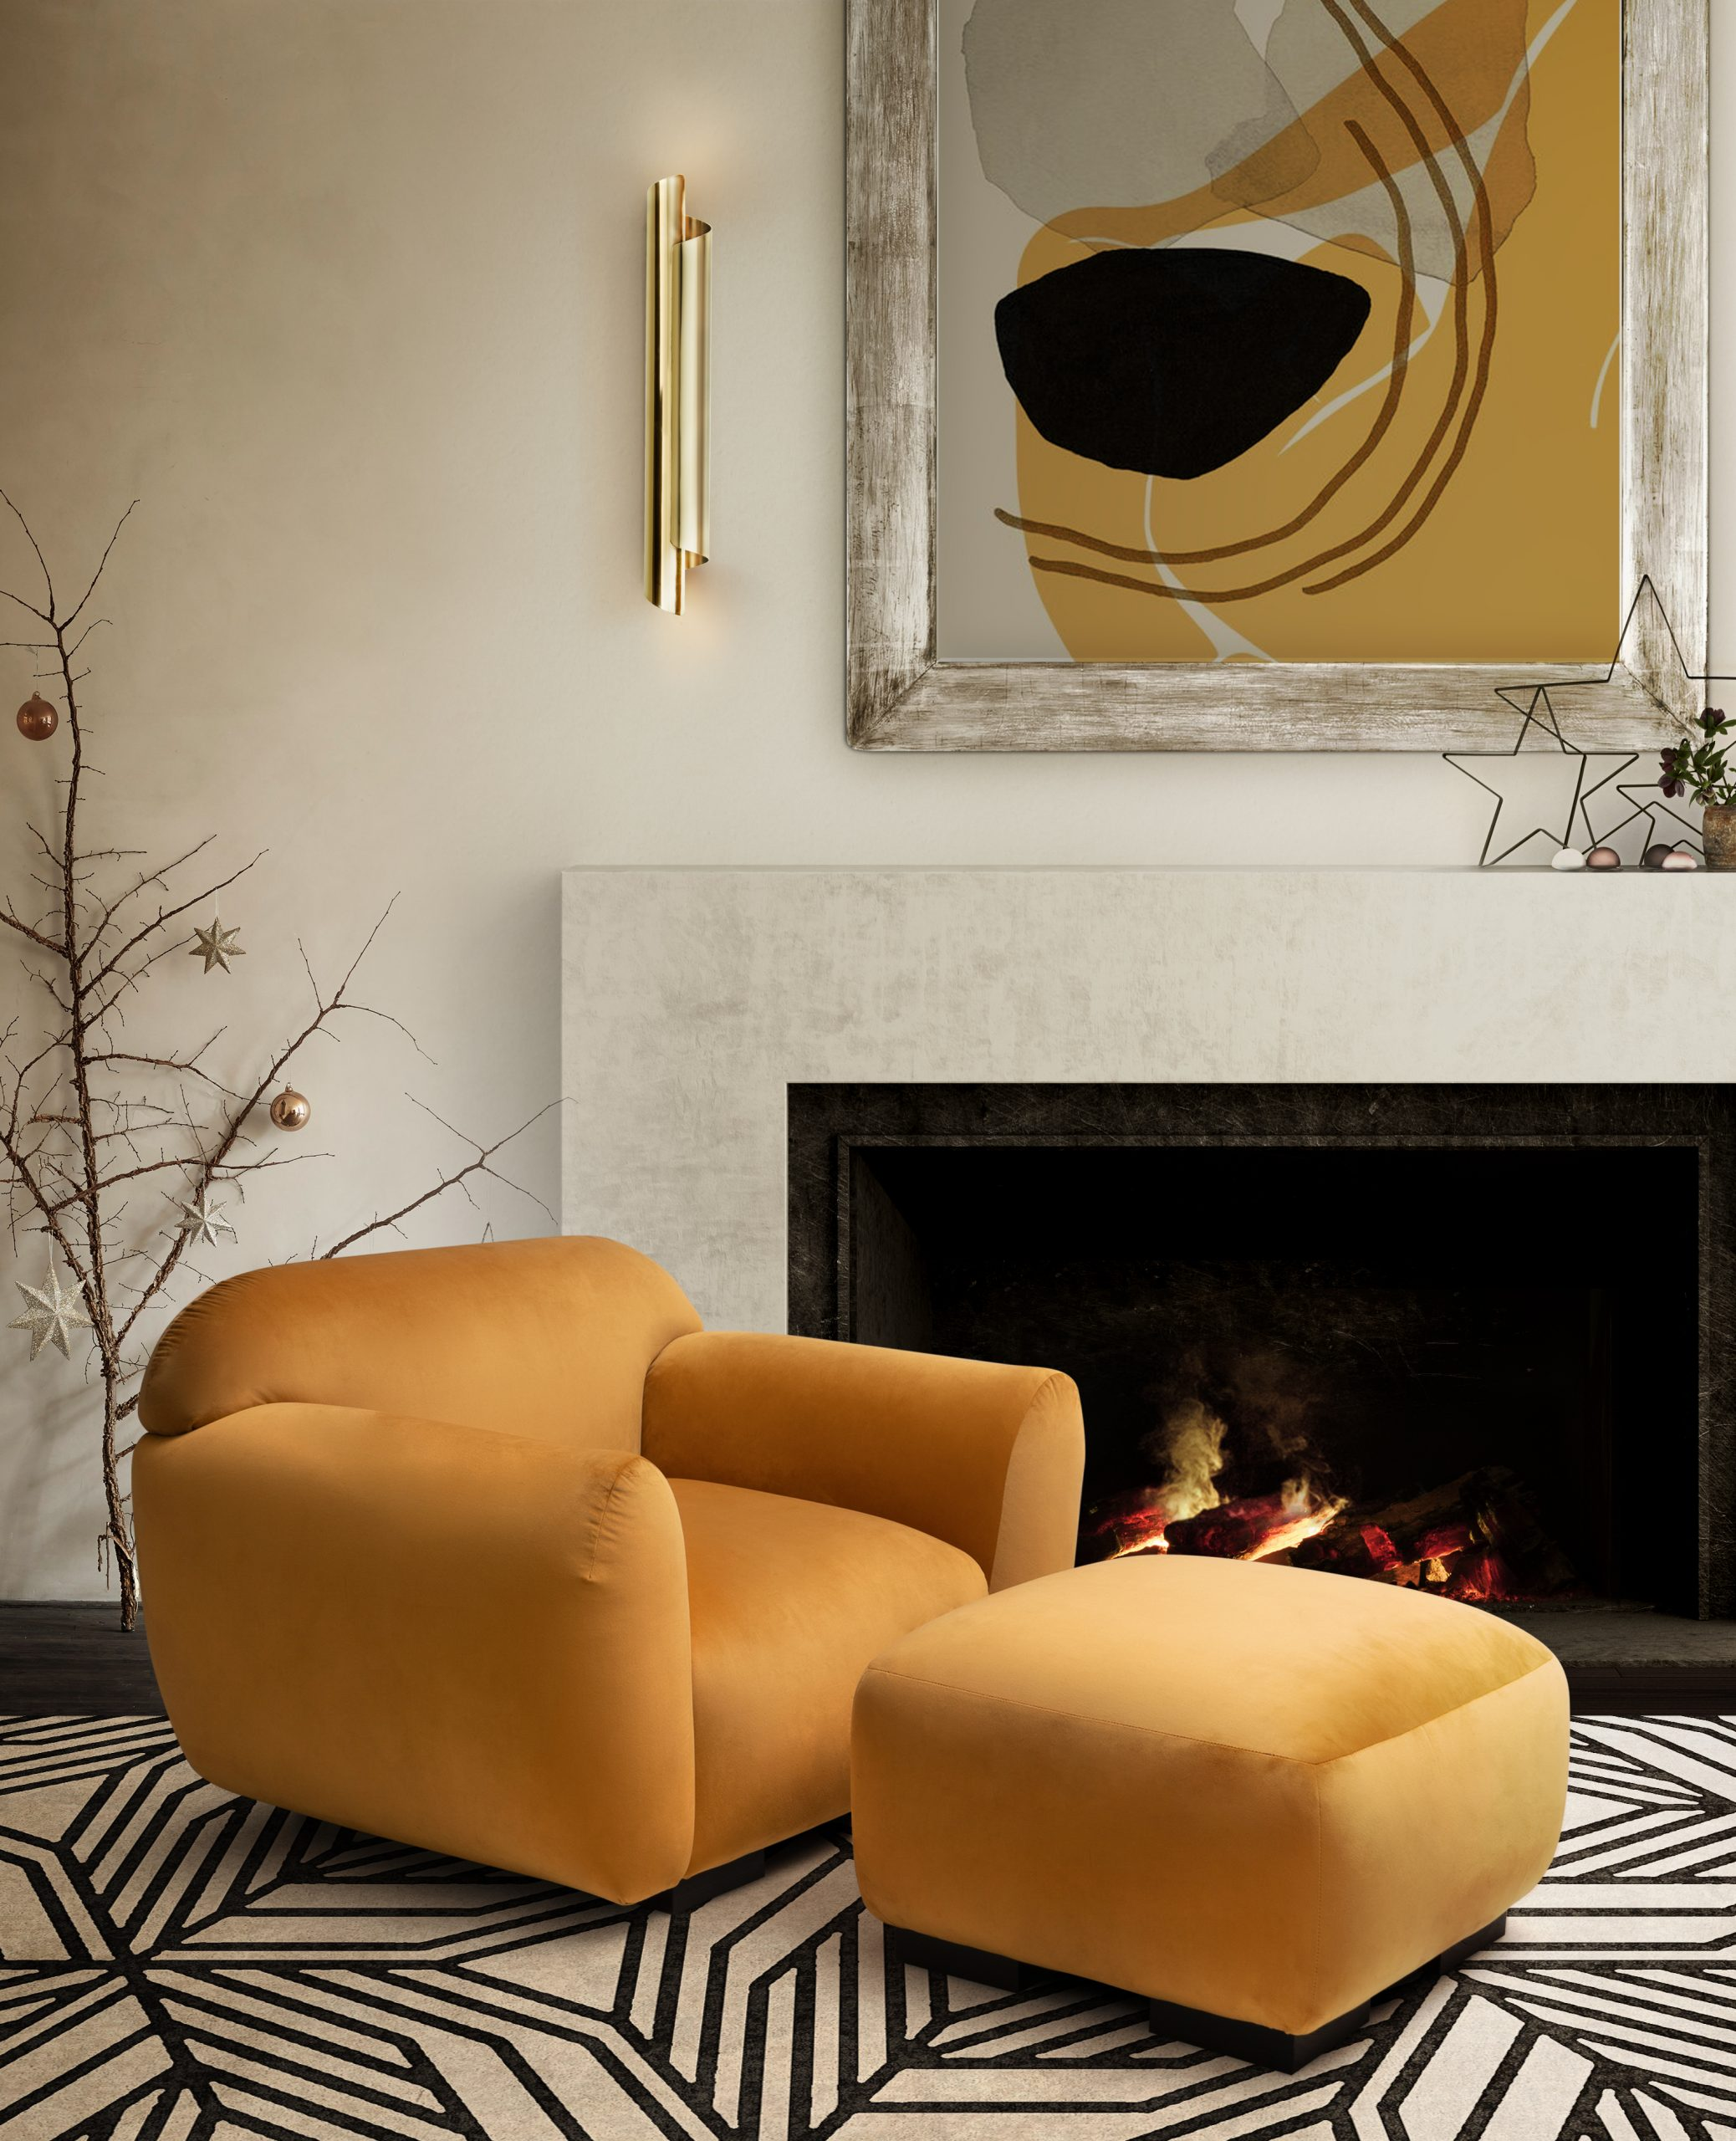 Home Decor Trends about to emerge at the start of 2020 home decor trends Home Decor Trends about to emerge at the start of 2020 otter chair geometric forms and colorful spaces scaled